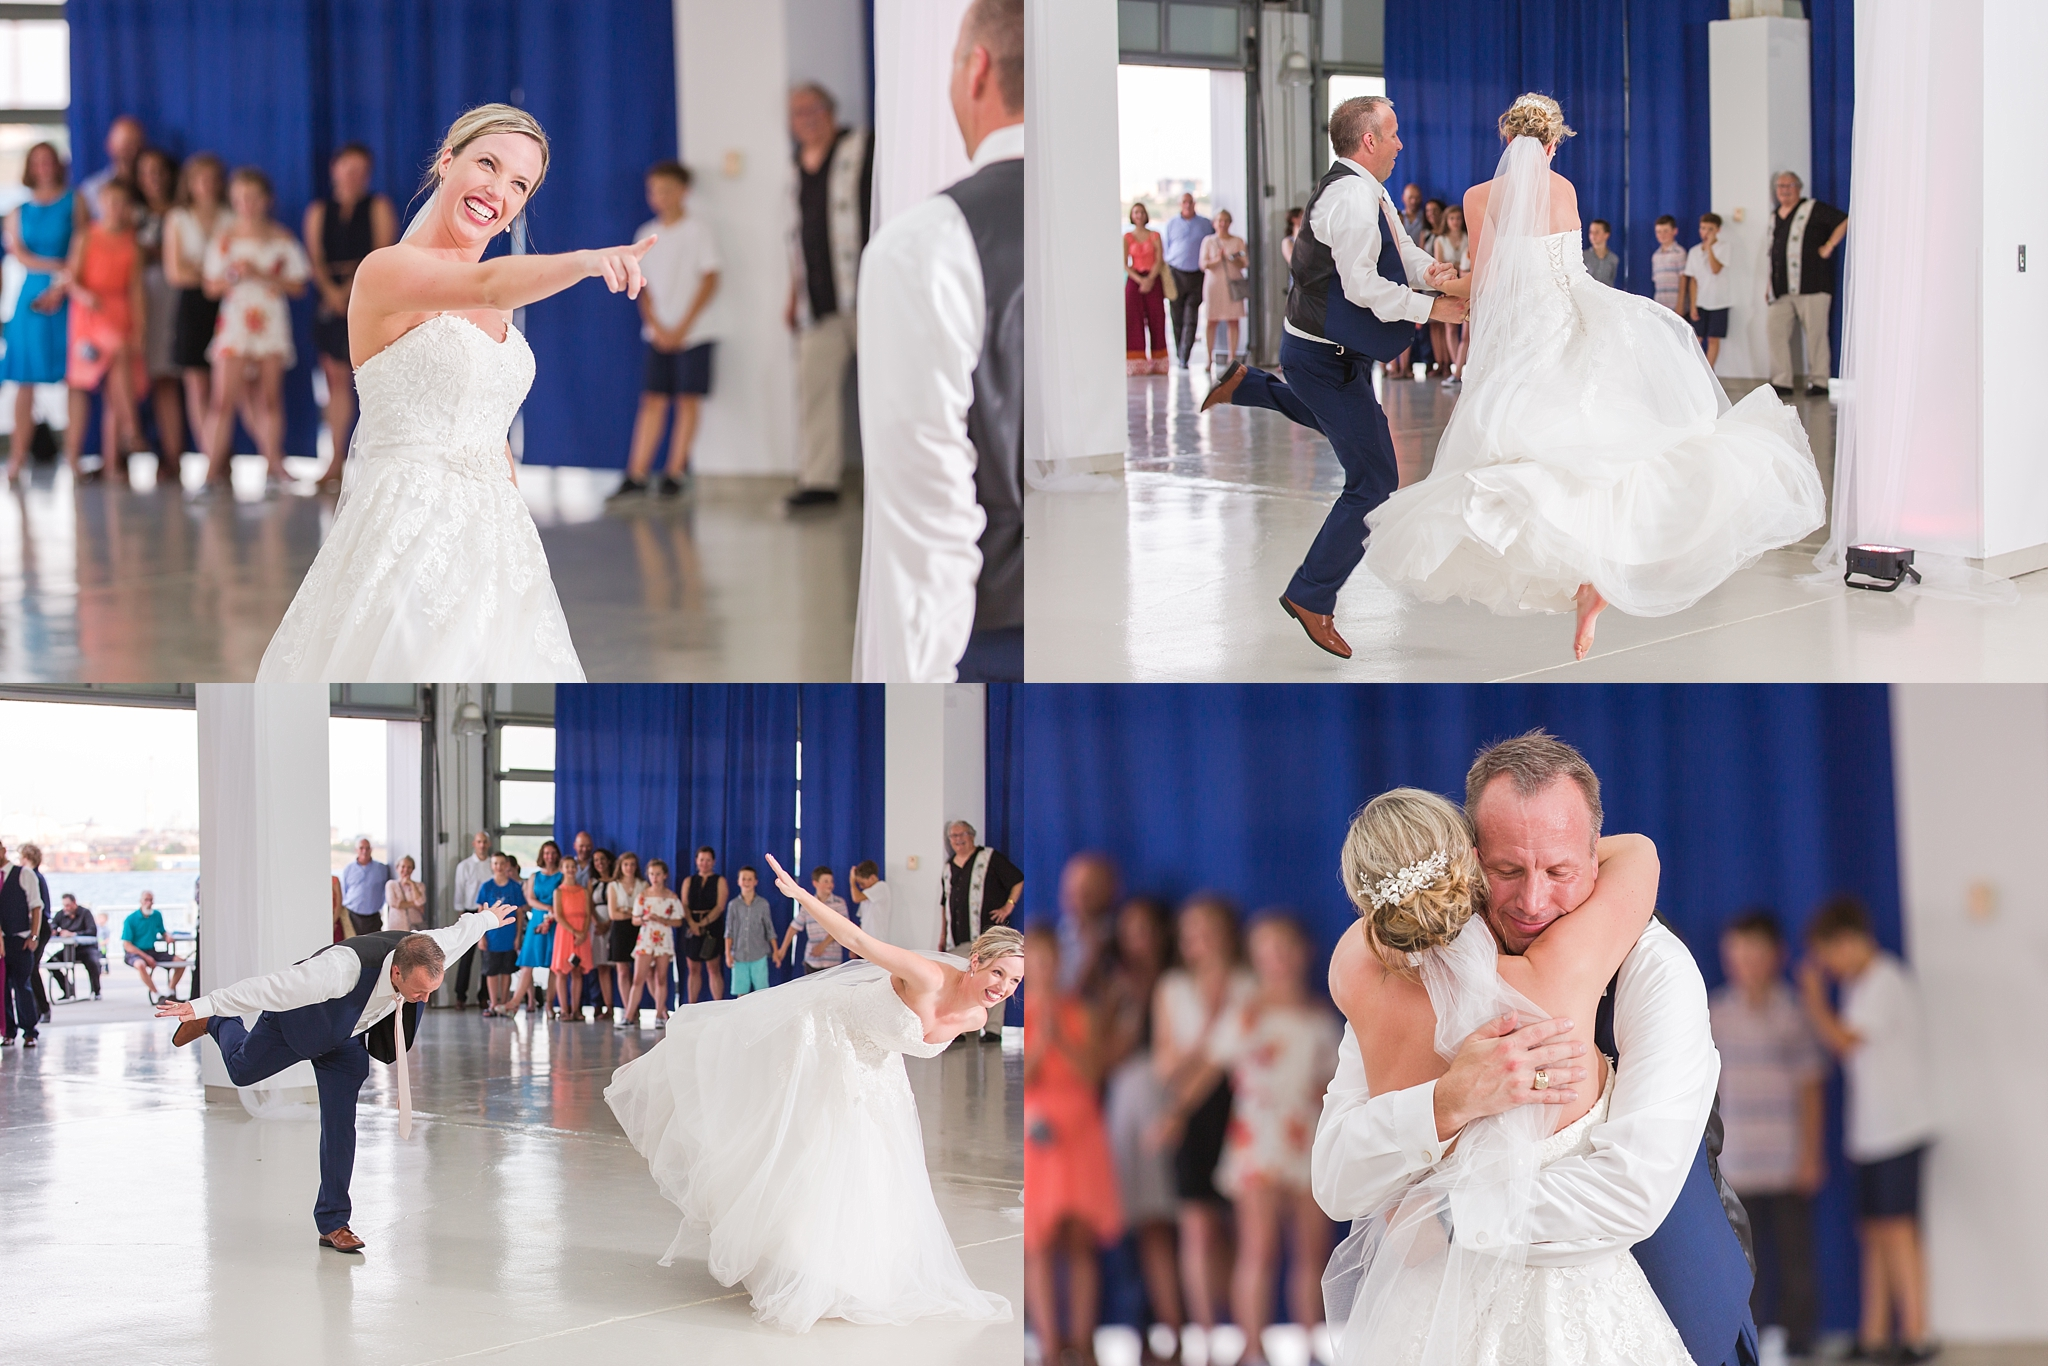 fun-nautical-wedding-photos-at-the-bean-dock-in-downtown-port-huron-michigan-by-courtney-carolyn-photography_0110.jpg